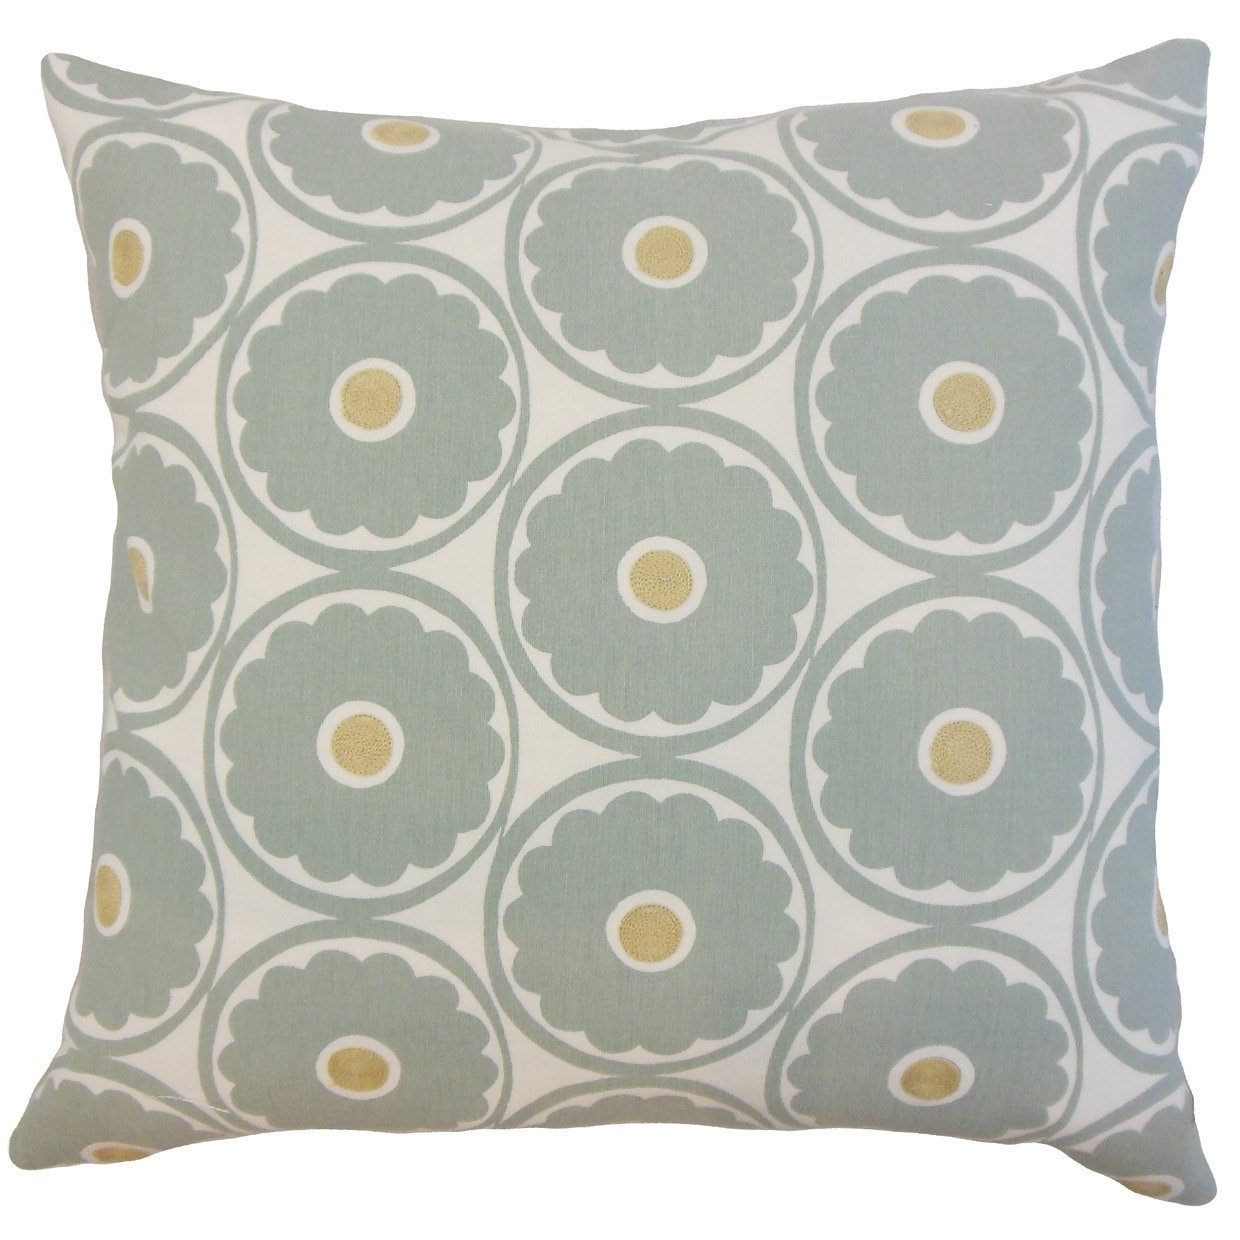 The Pillow Collection Spa Day Floral Bedding Sham, King/20'' x 36''